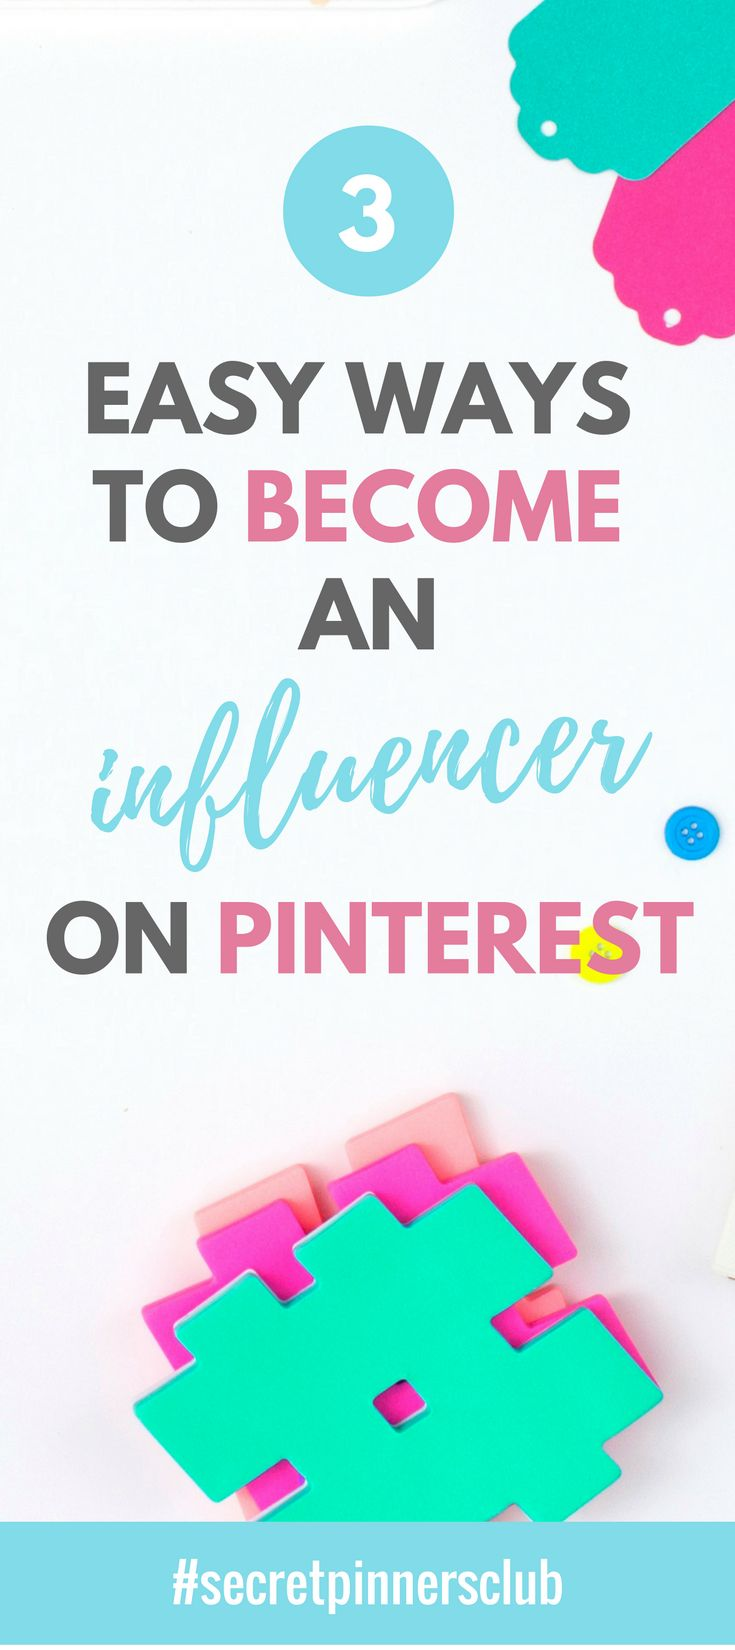 Click to find out what three things you can do today become an influencer on Pinterest tomorrow. Find Pinterest tips and tricks over on the blog.